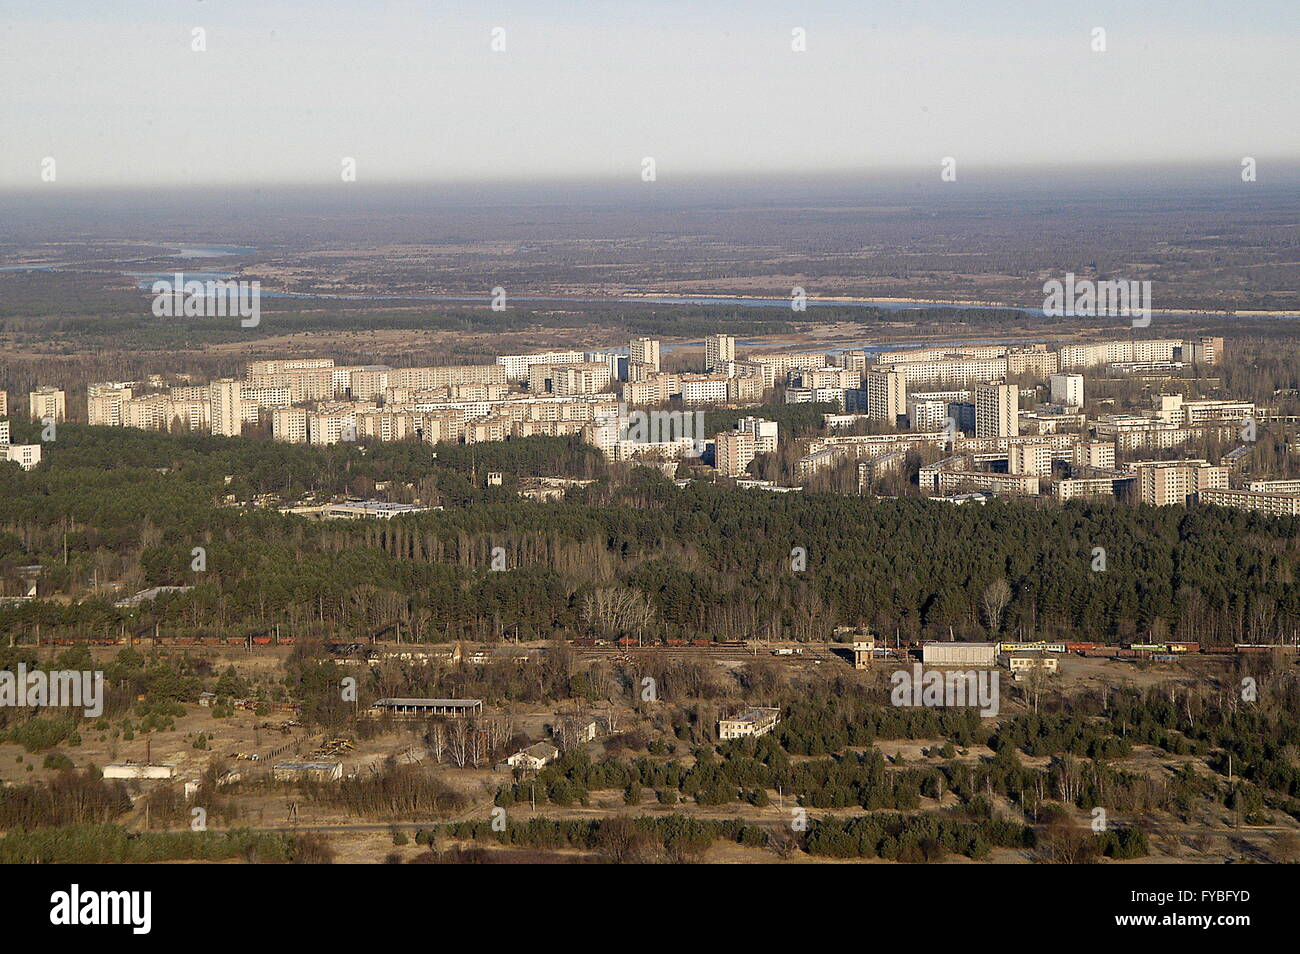 Pripyat, Ukraine. 23rd Apr, 2016. A helicopter view of the city of Pripyat near the Chernobyl power station. On - Stock Image